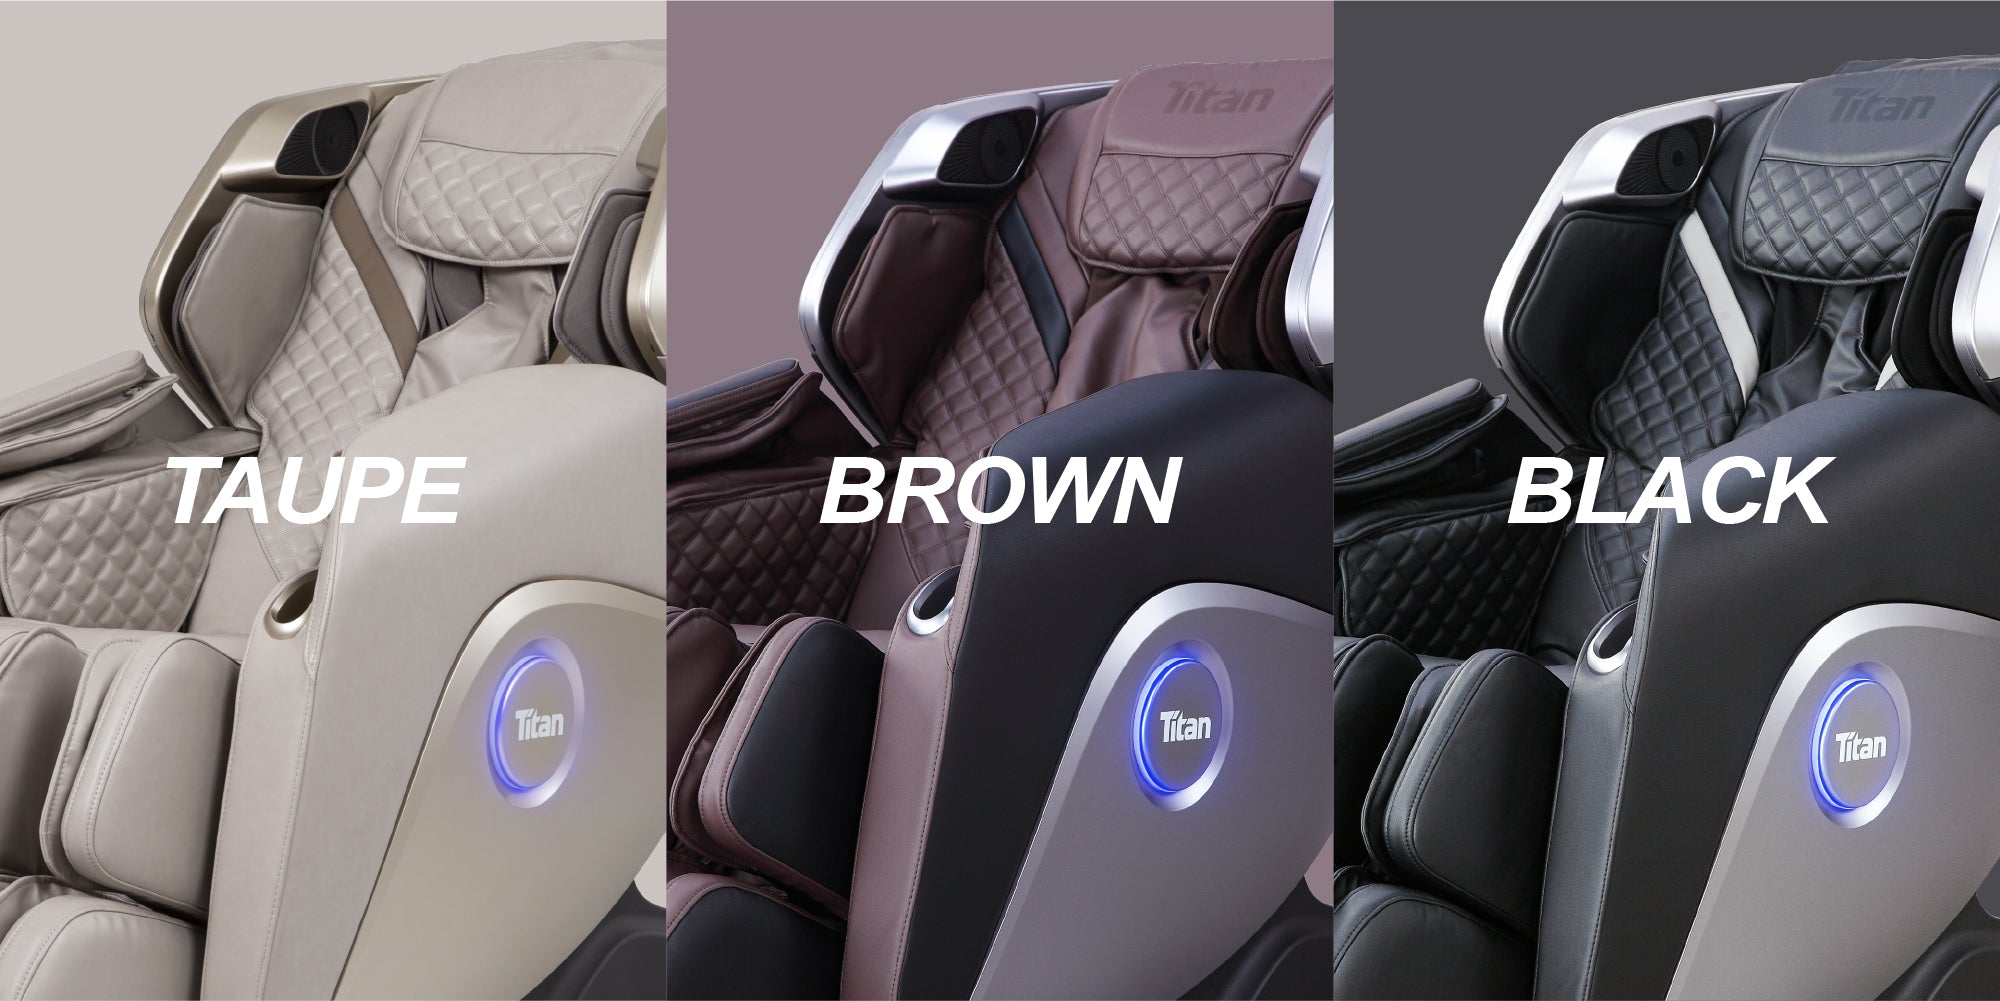 Titan Elite 3D Massage Chair - Taupe, Brown and Black colors